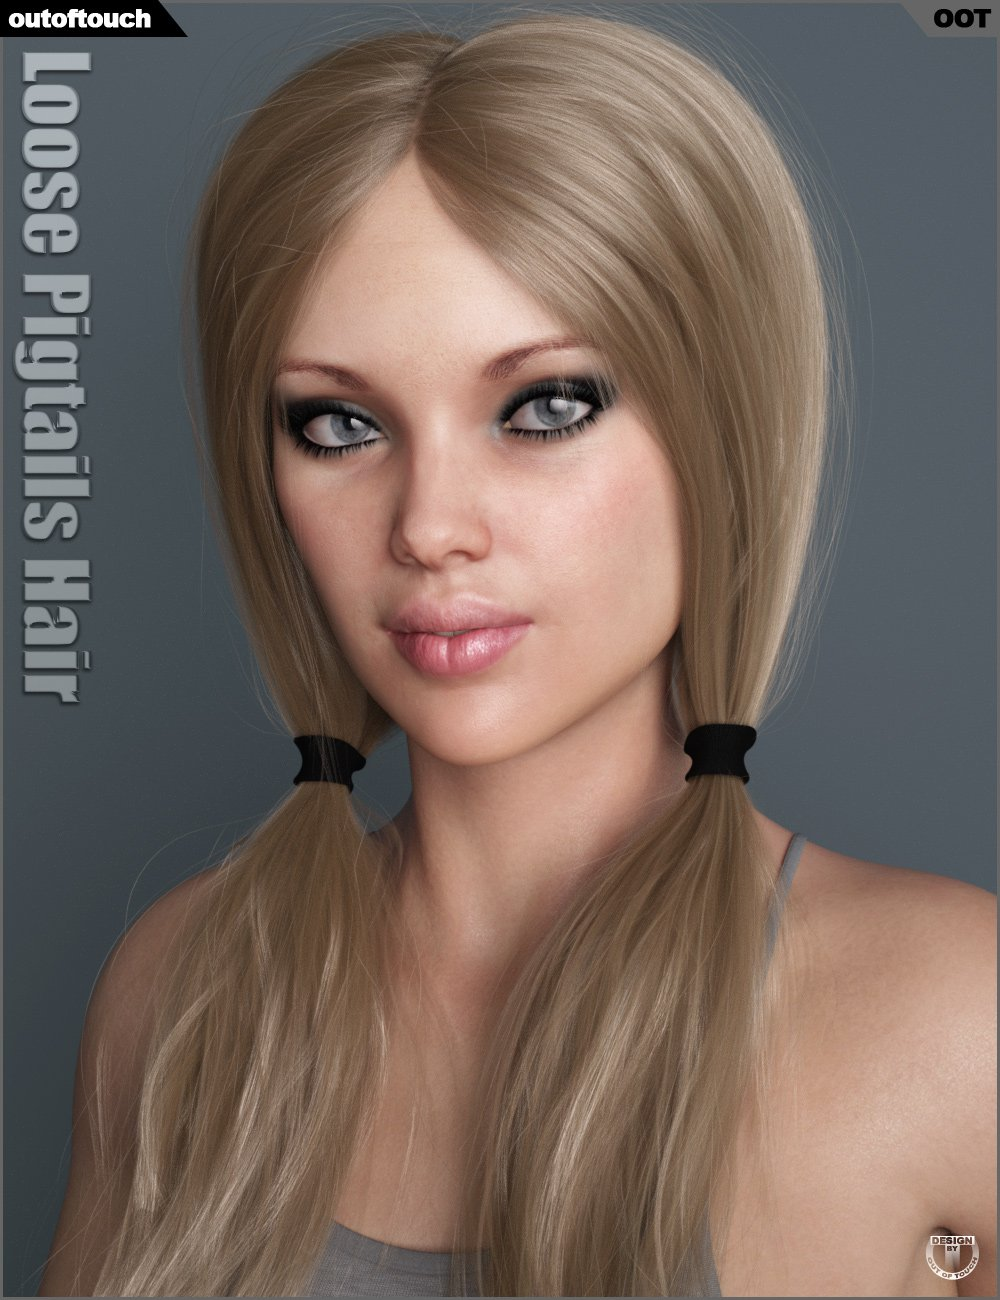 Loose Pigtails Hair for Genesis 3 and 8 Female(s) by: outoftouch, 3D Models by Daz 3D